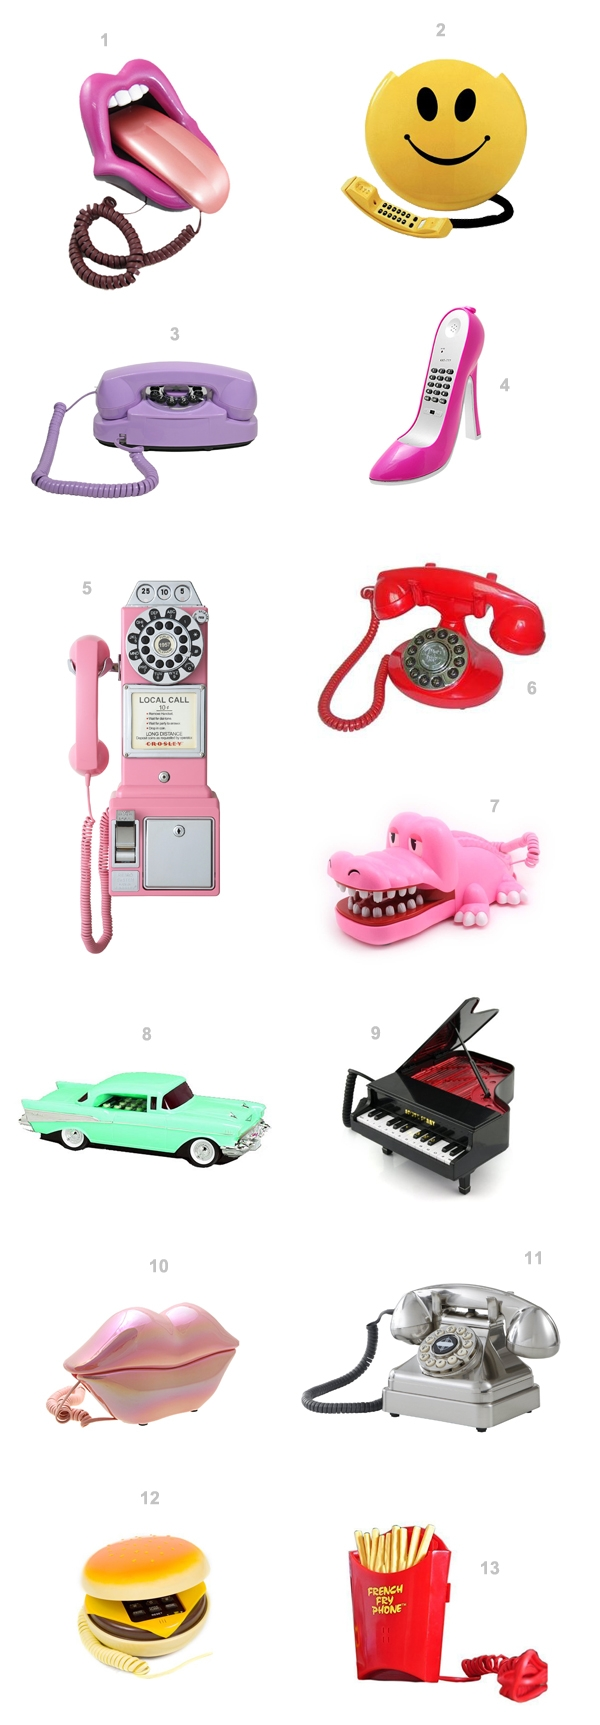 13 Novelty Phones You Probably Need | studiodiy.com